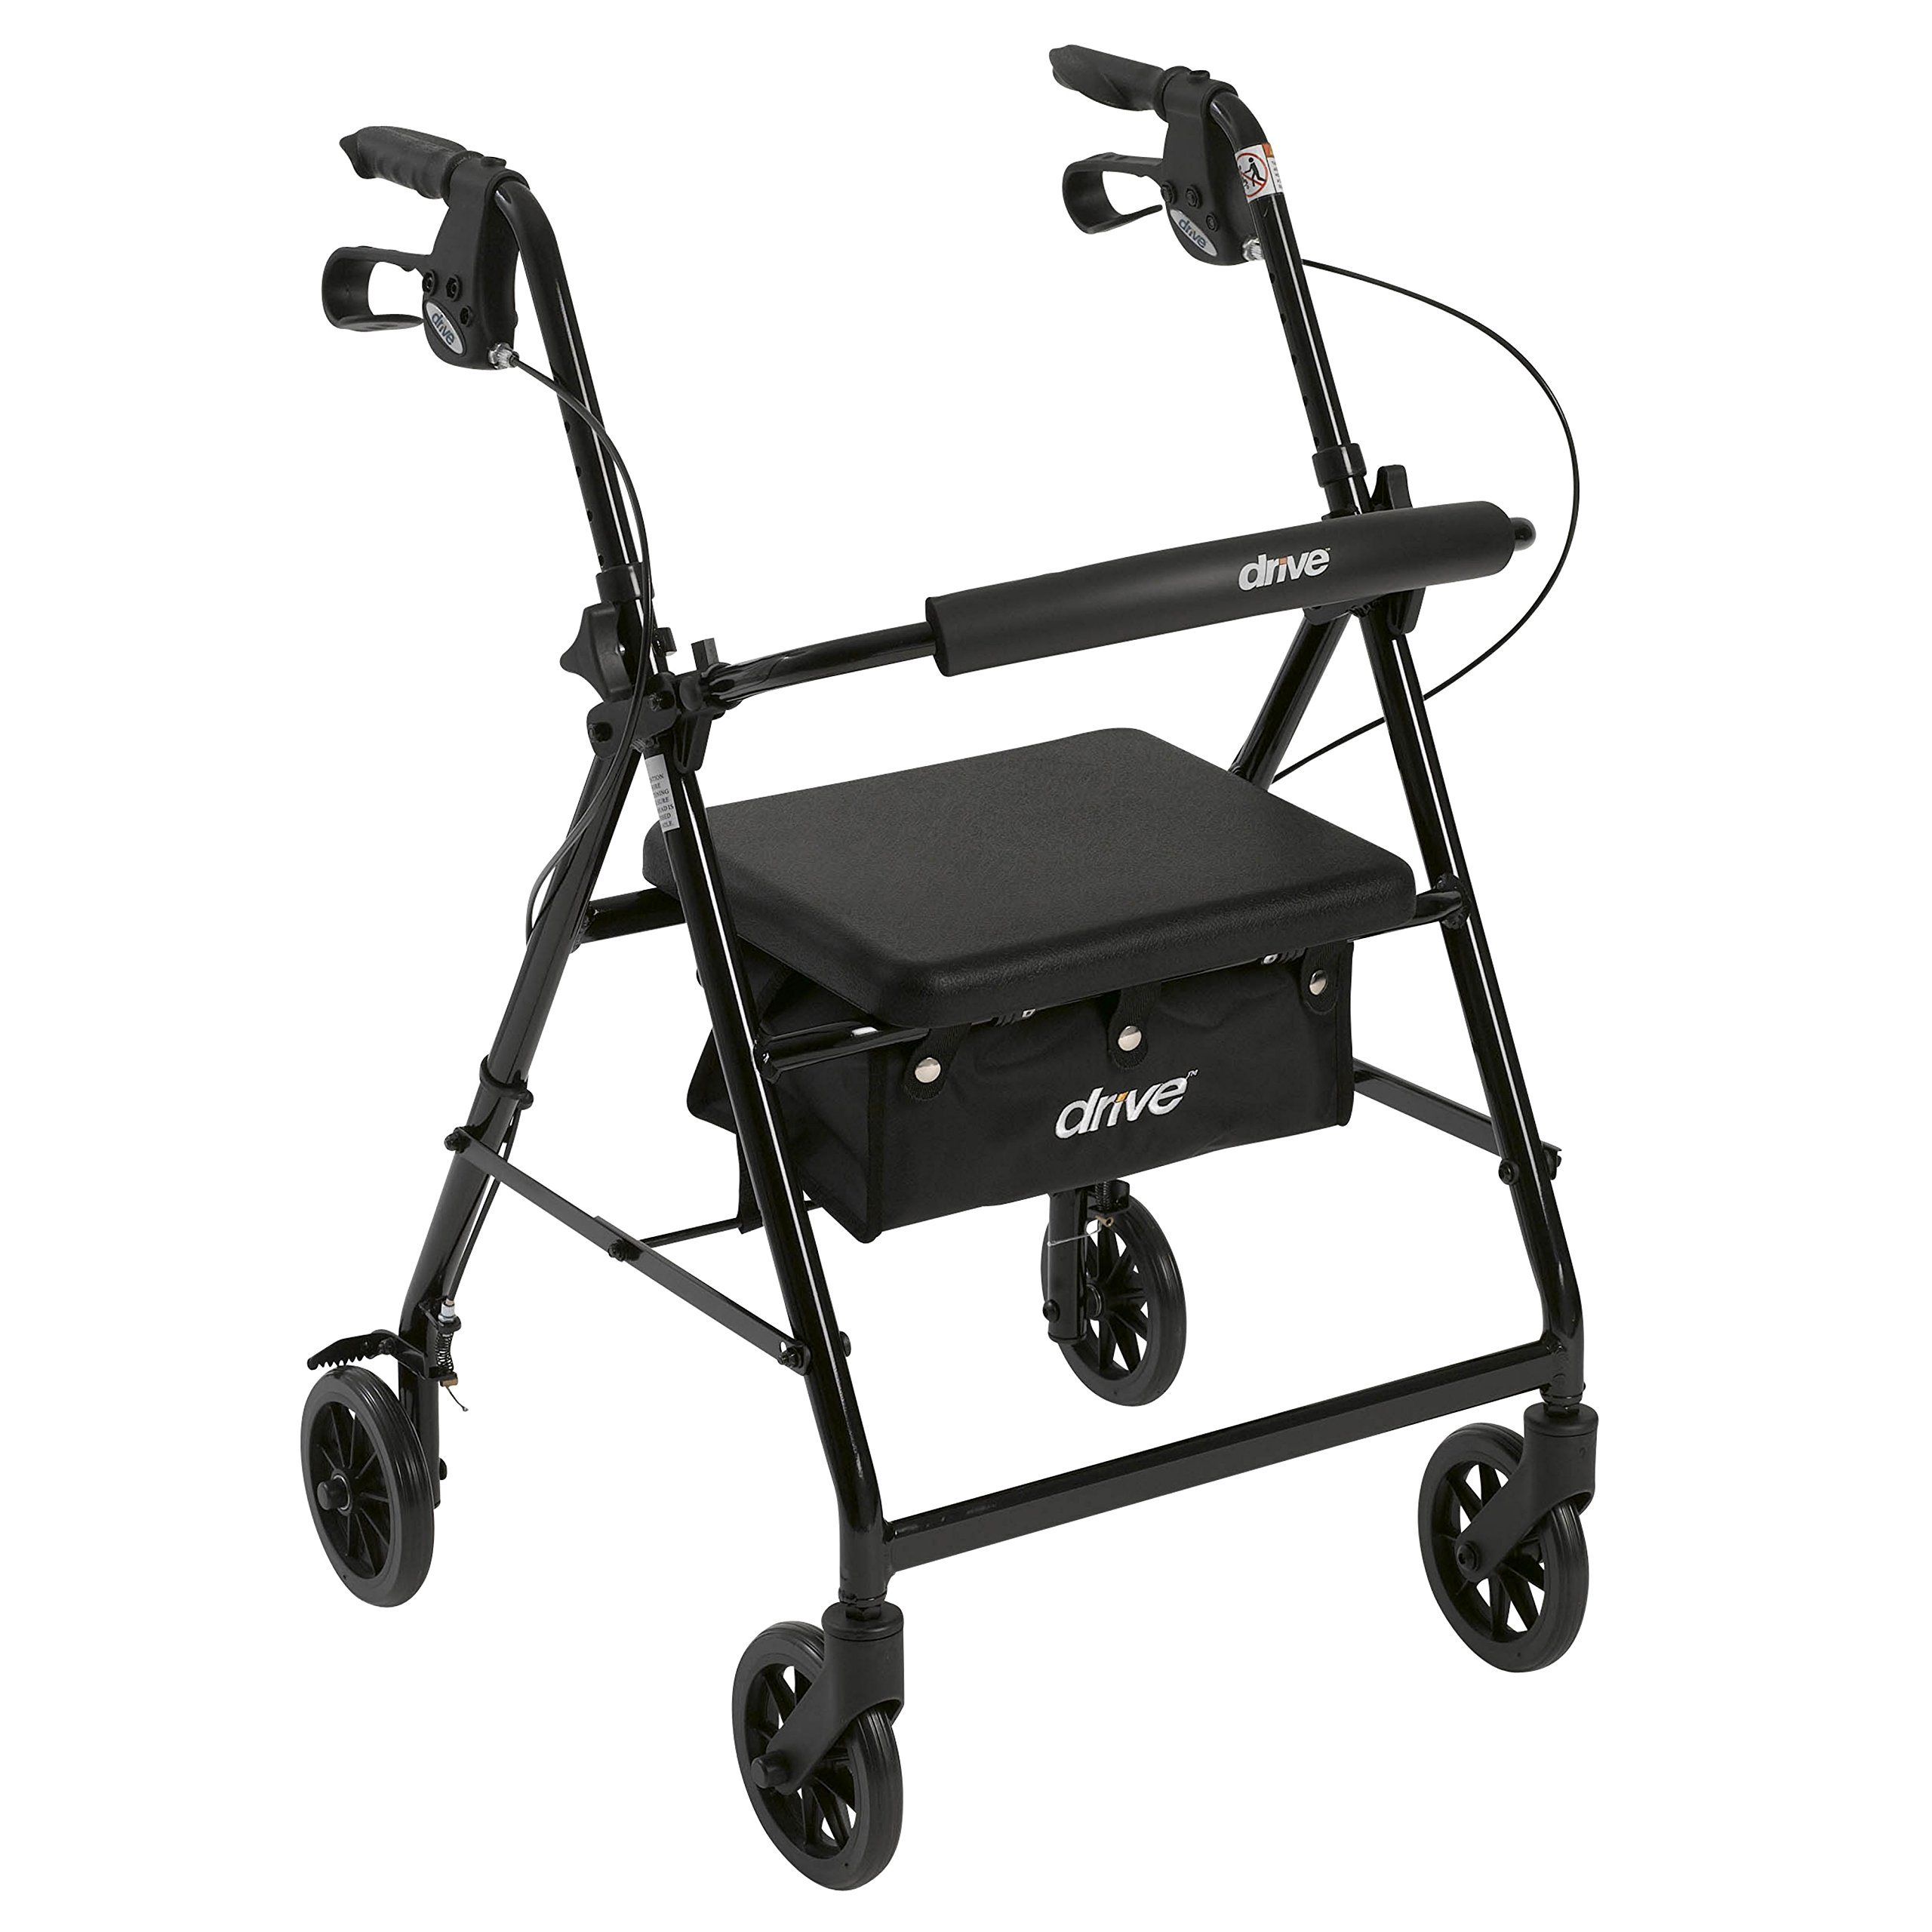 Drive Medical Aluminum Rollator Walker Fold Up and Removable Back Support, Padded Seat, 6'' Wheels, Black